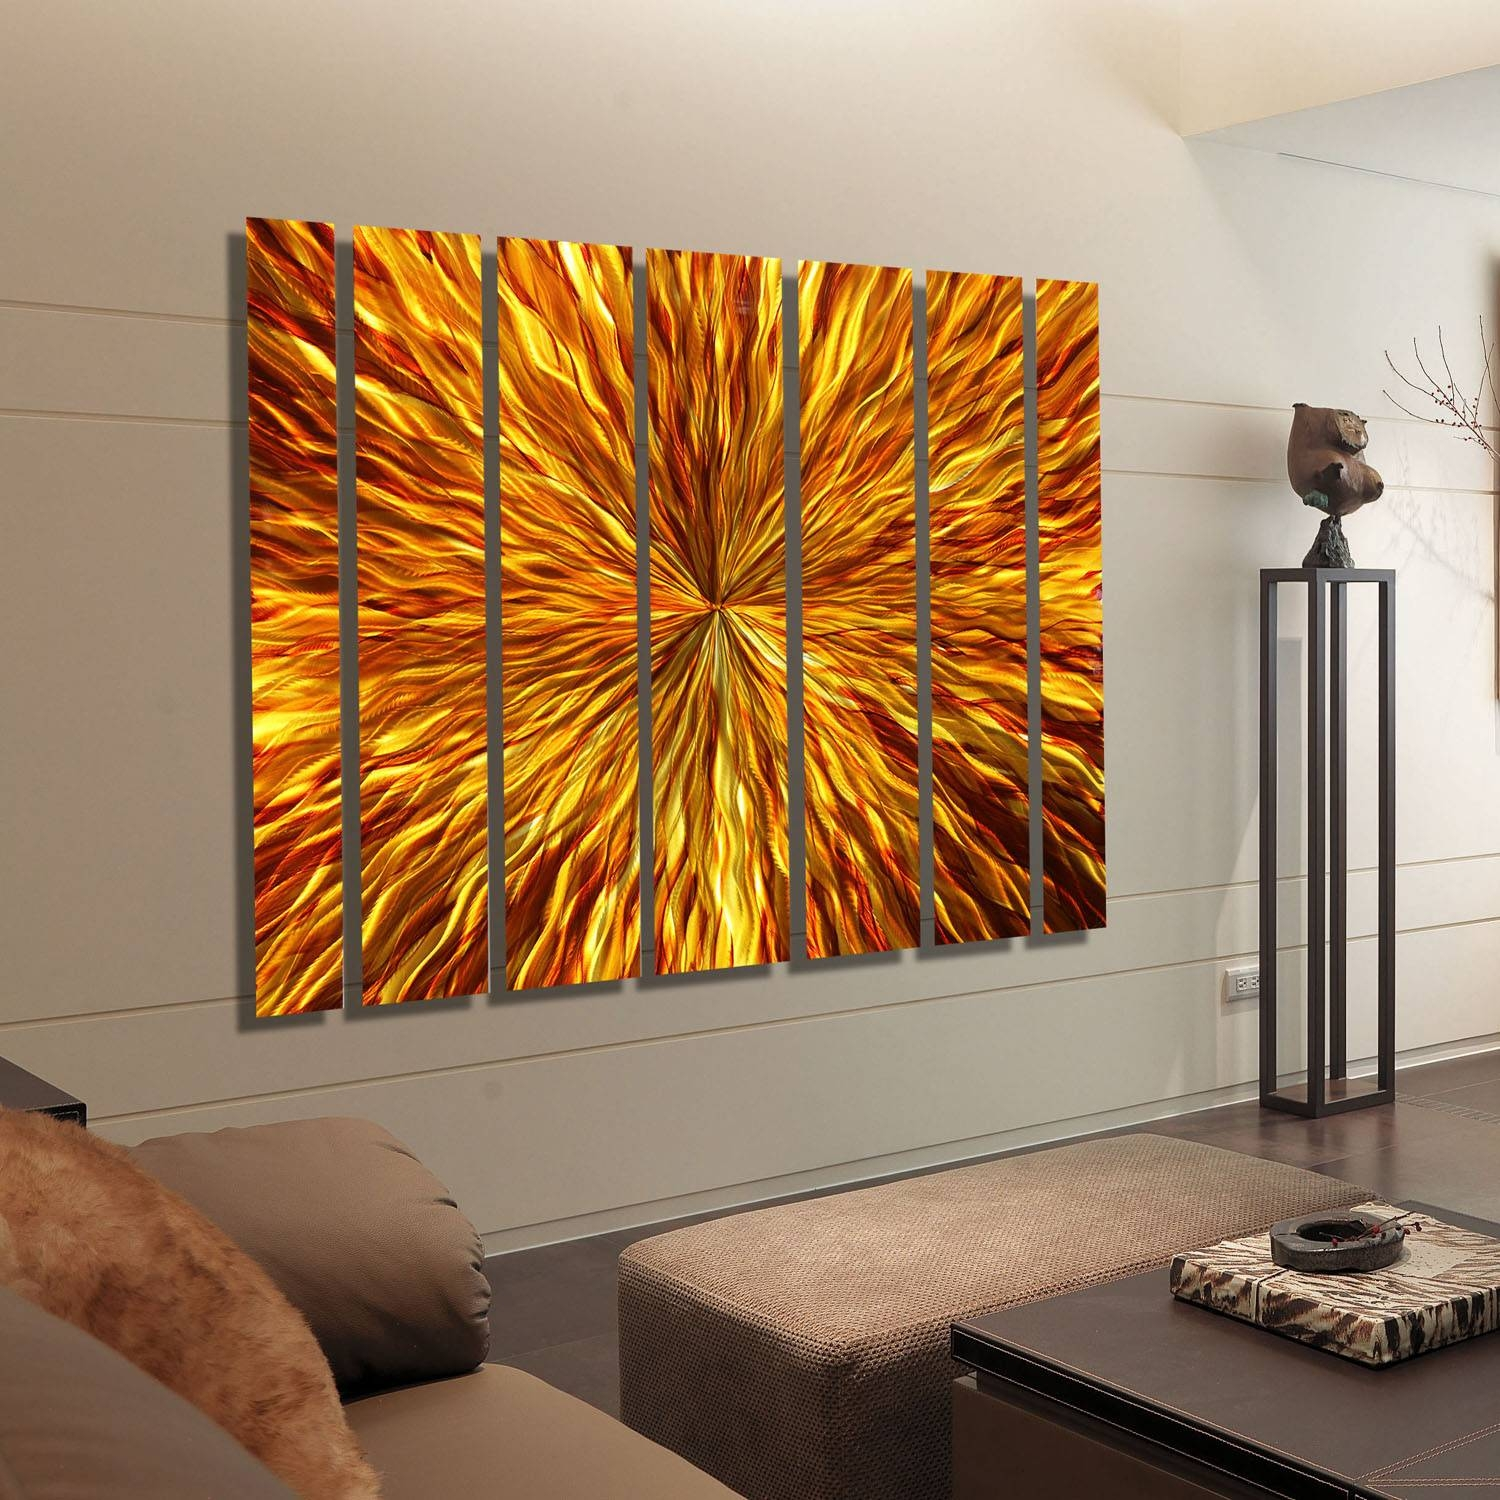 Amber Vortex Xl – Extra Large Modern Metal Wall Artjon Allen For Best And Newest Large Modern Wall Art (View 12 of 20)